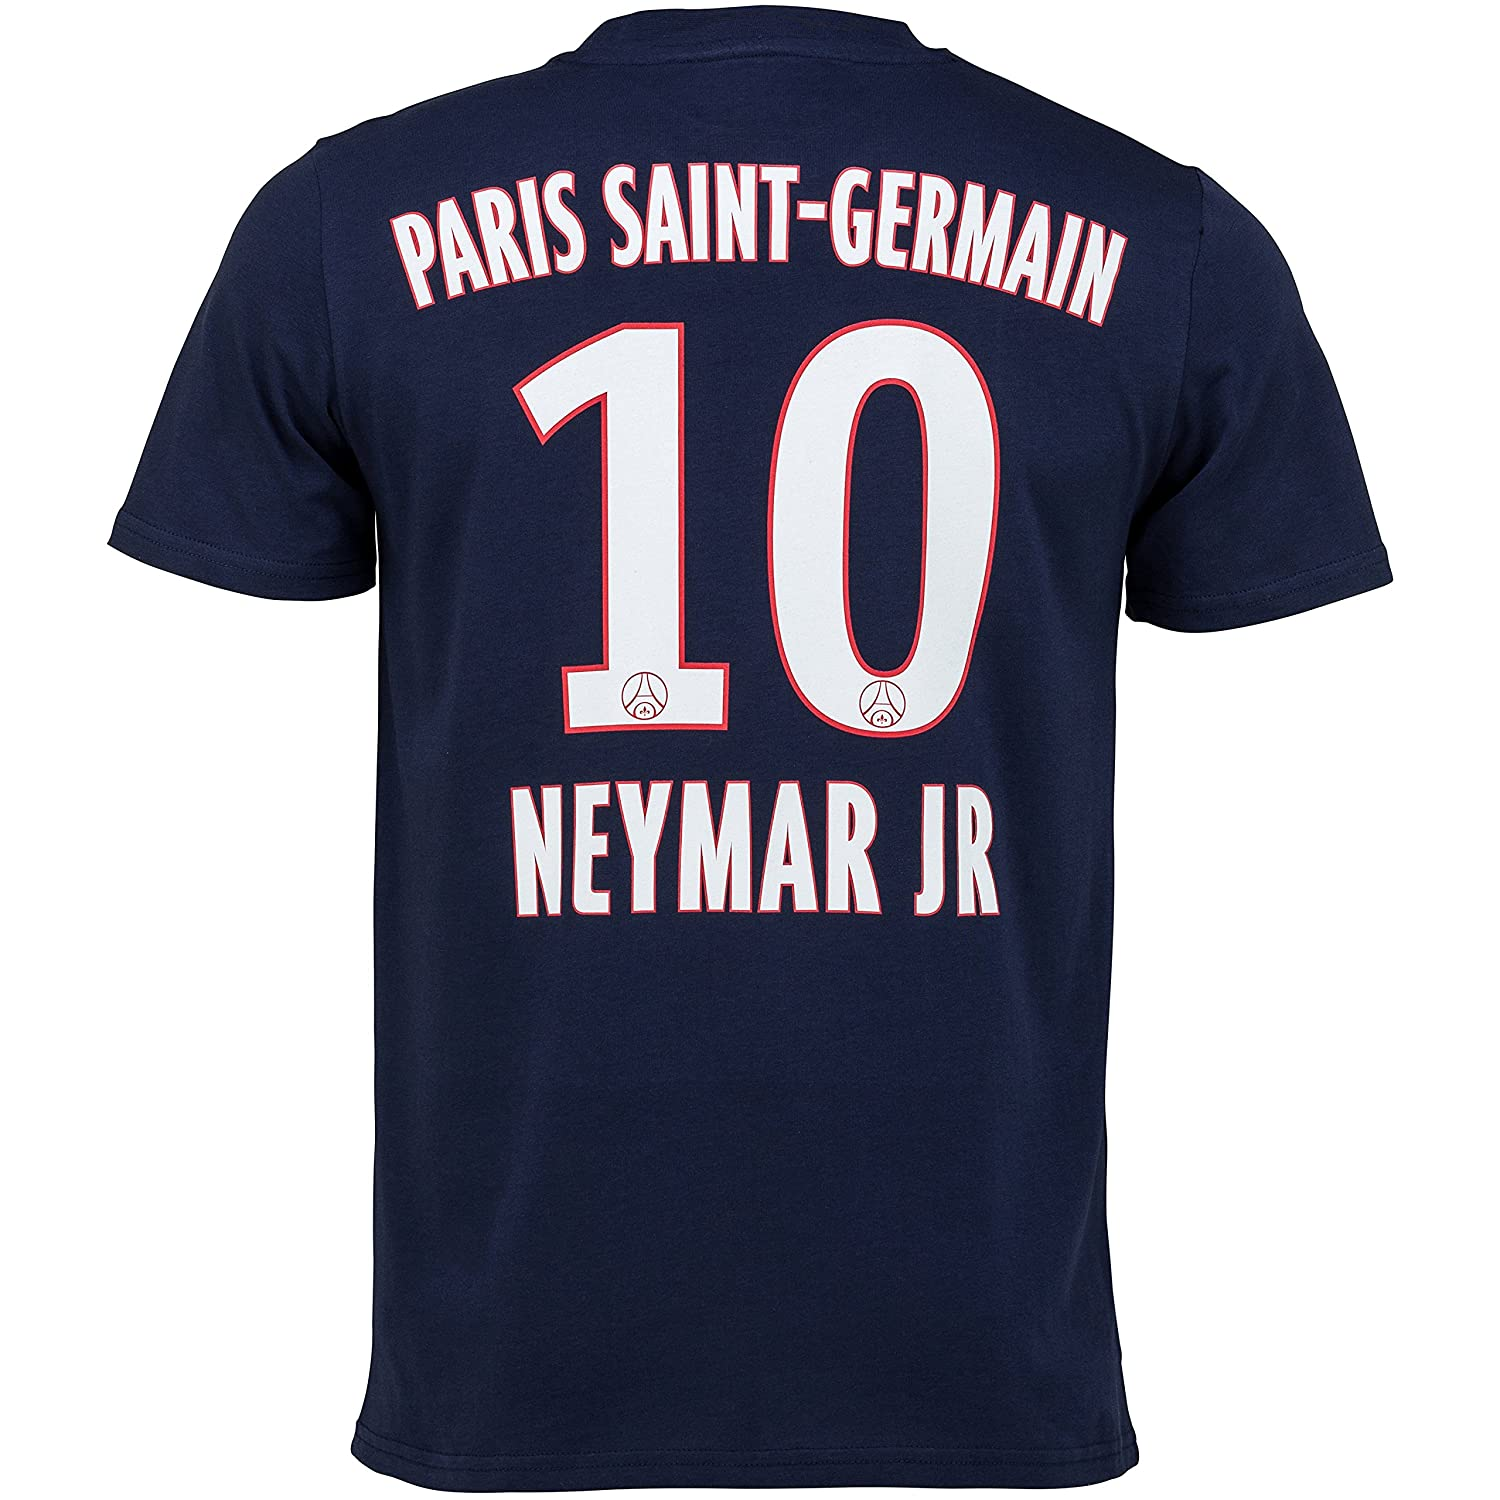 separation shoes 12599 6b773 PSG t-shirt - Neymar Jr - official Paris Saint Germain collection - for boys